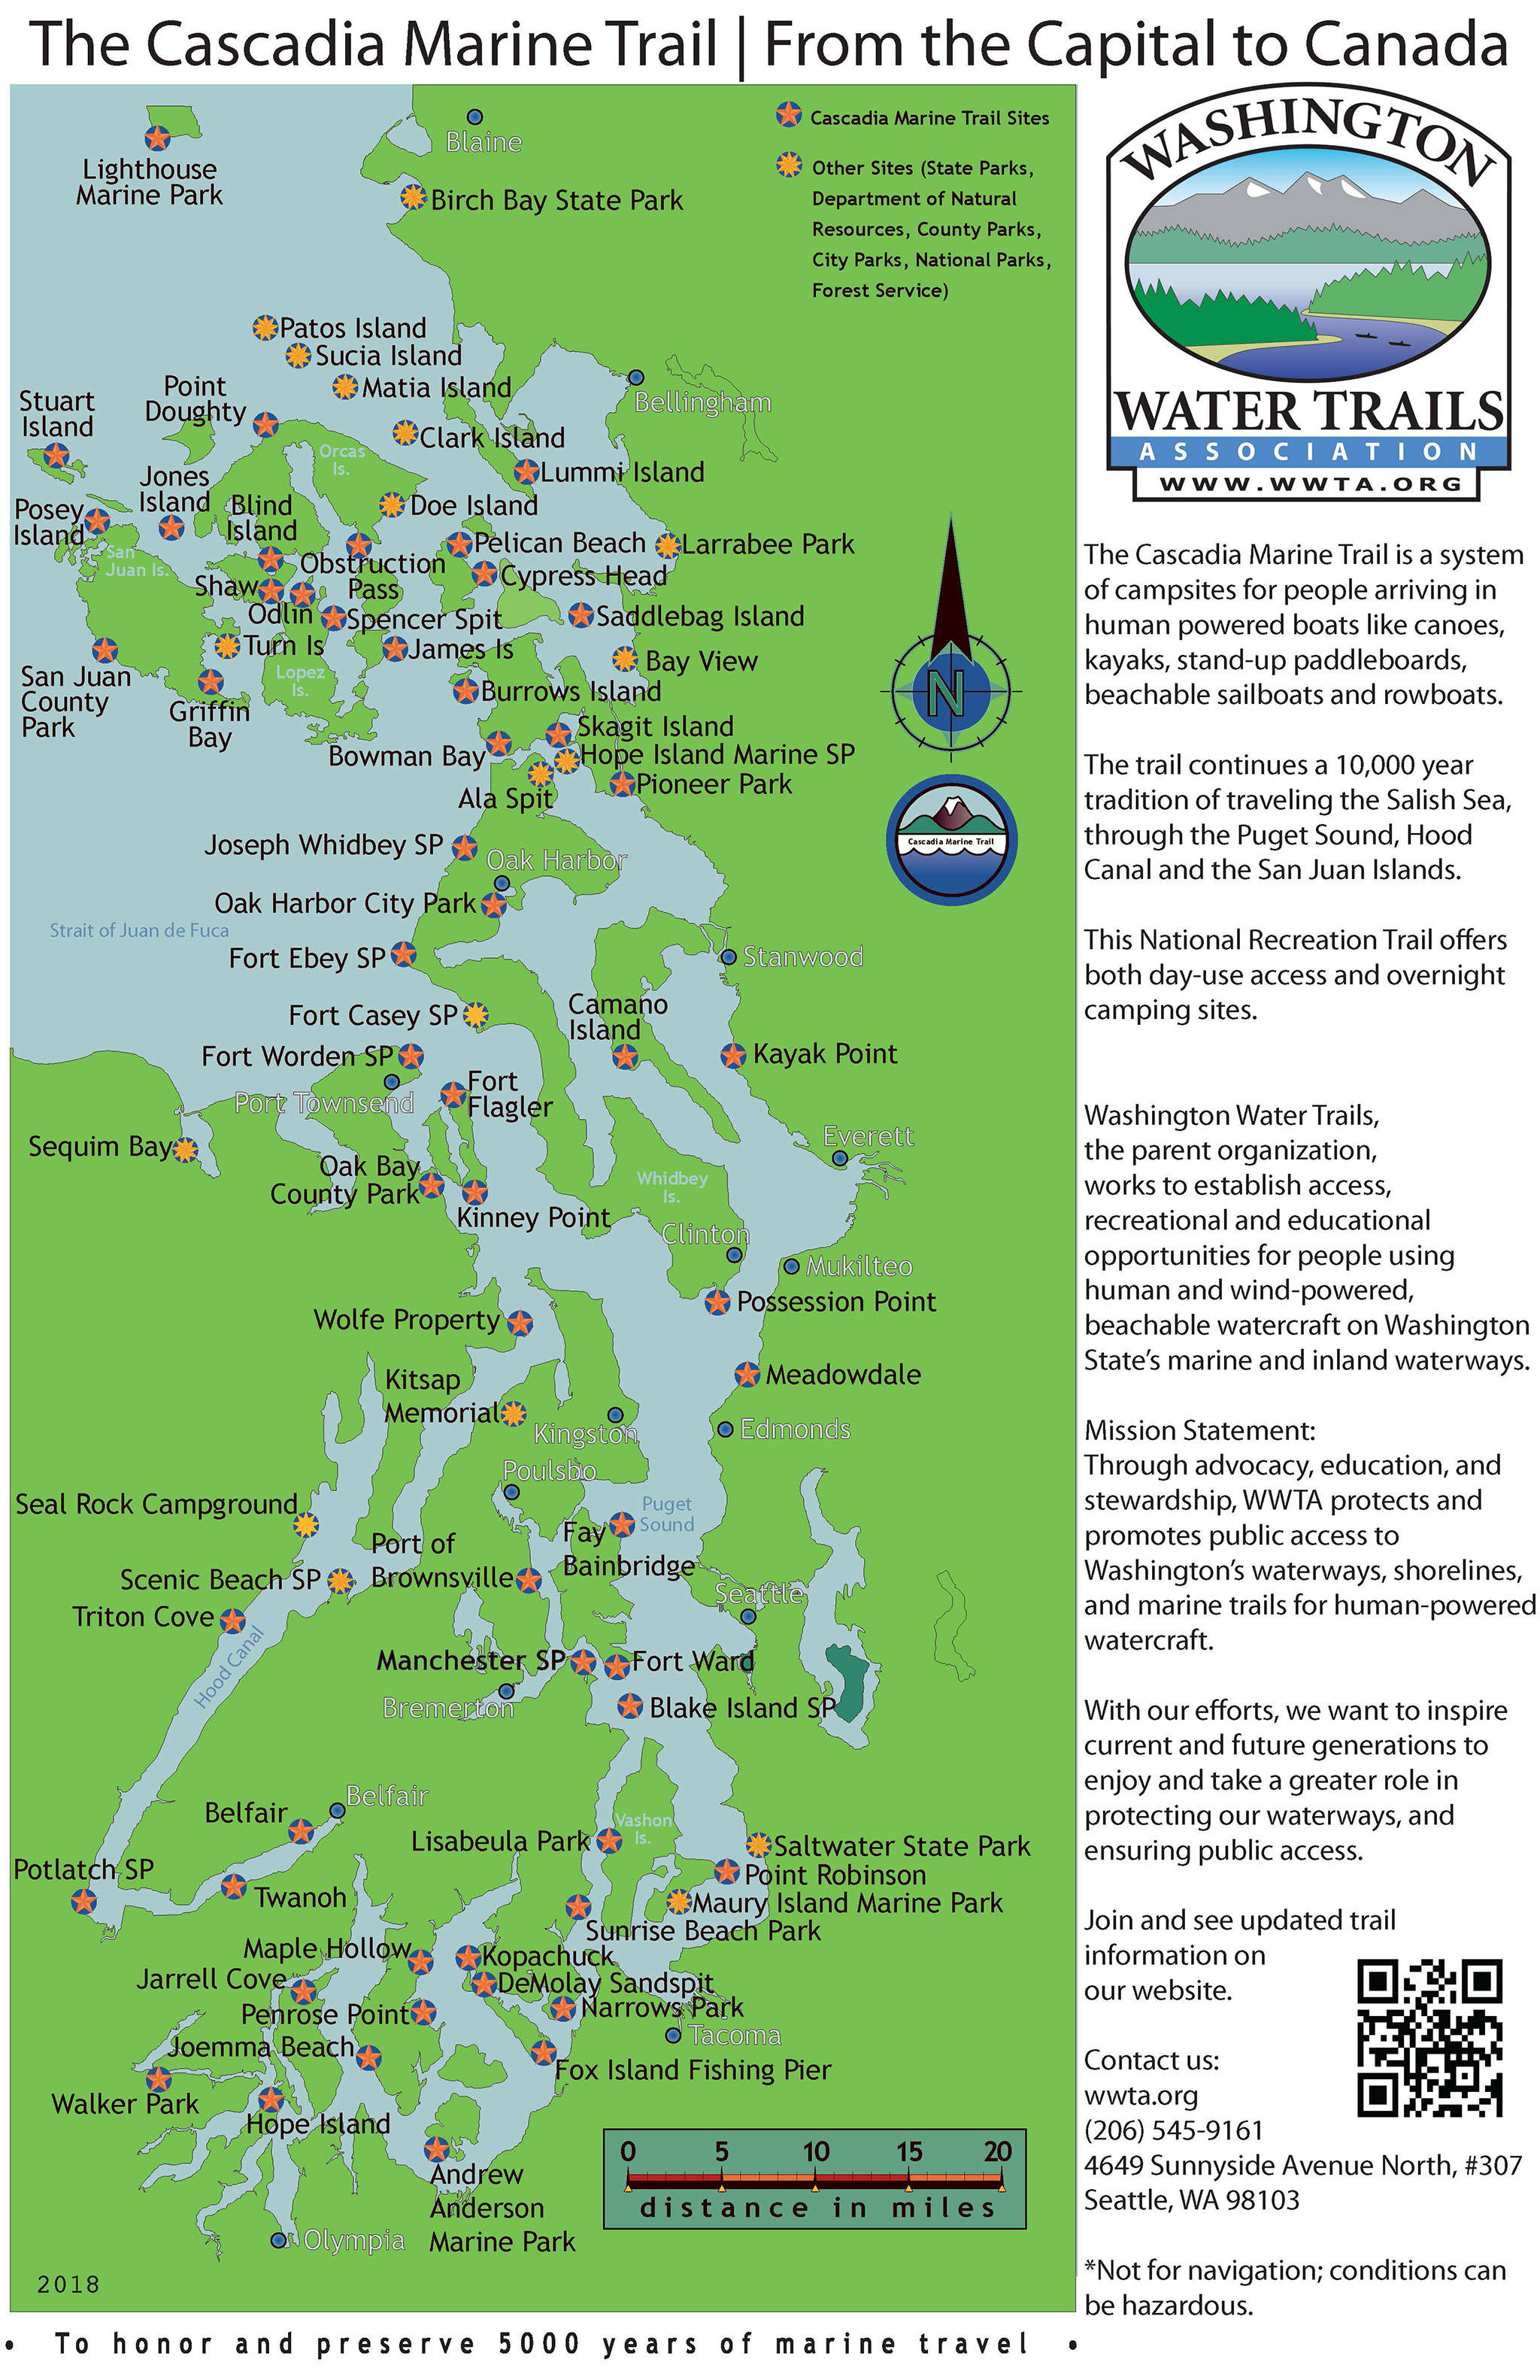 Since its formation, the Cascadia Marine Trail has been recognized as one of only 16 National Millennium Trails by the White House and was designated a national recreation trail,— the same status give to the Pacific Crest Trail. (Washington Water Trails Association)